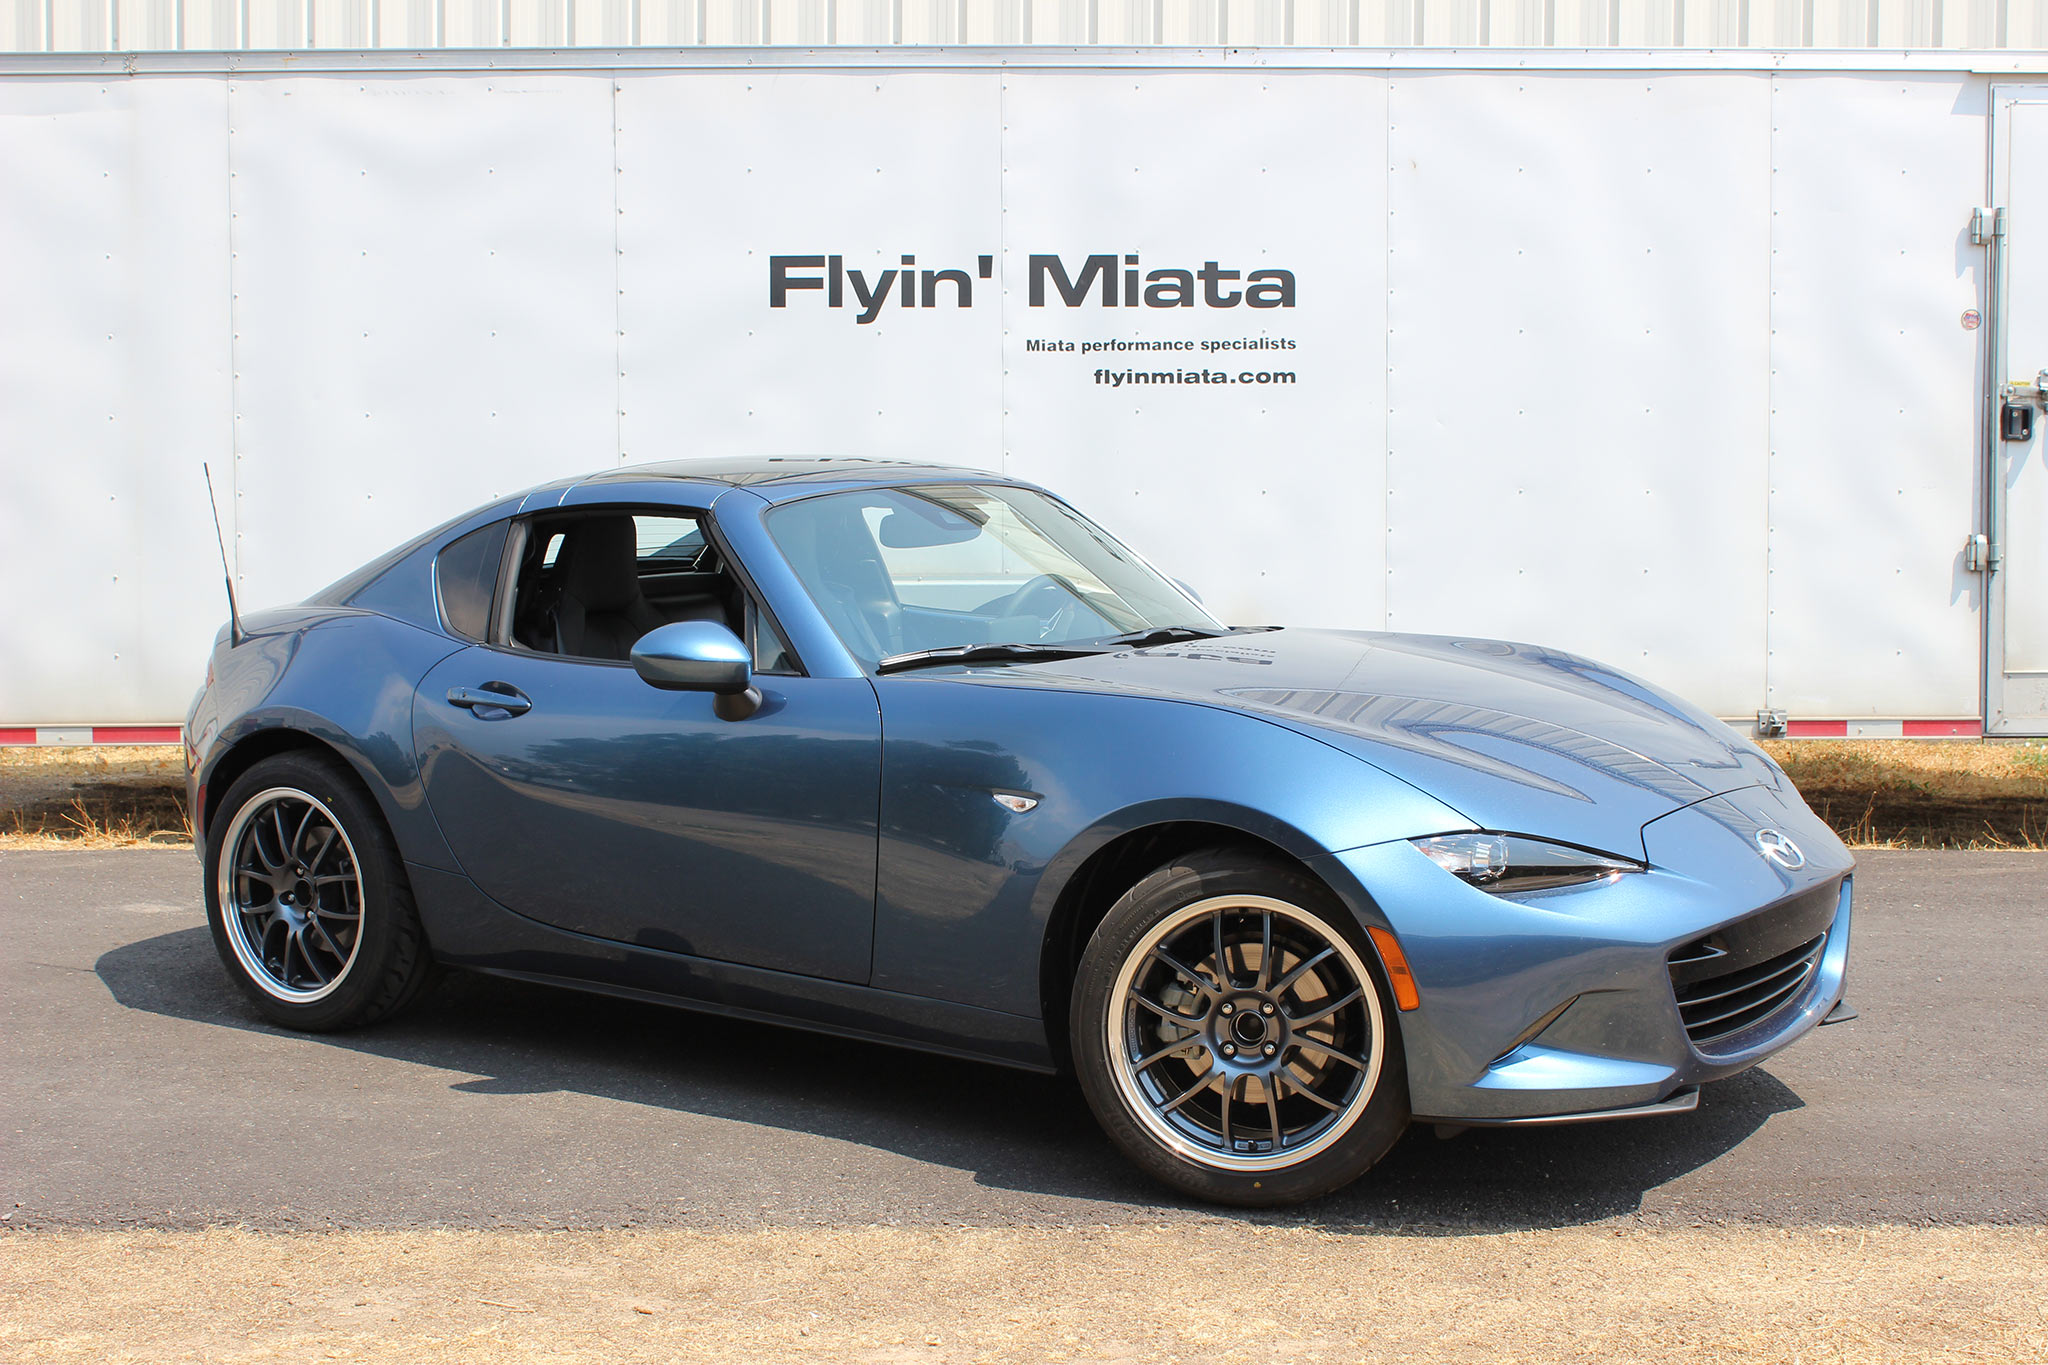 Eternal Blue with 6ULs - pics - MX-5 Miata Forum